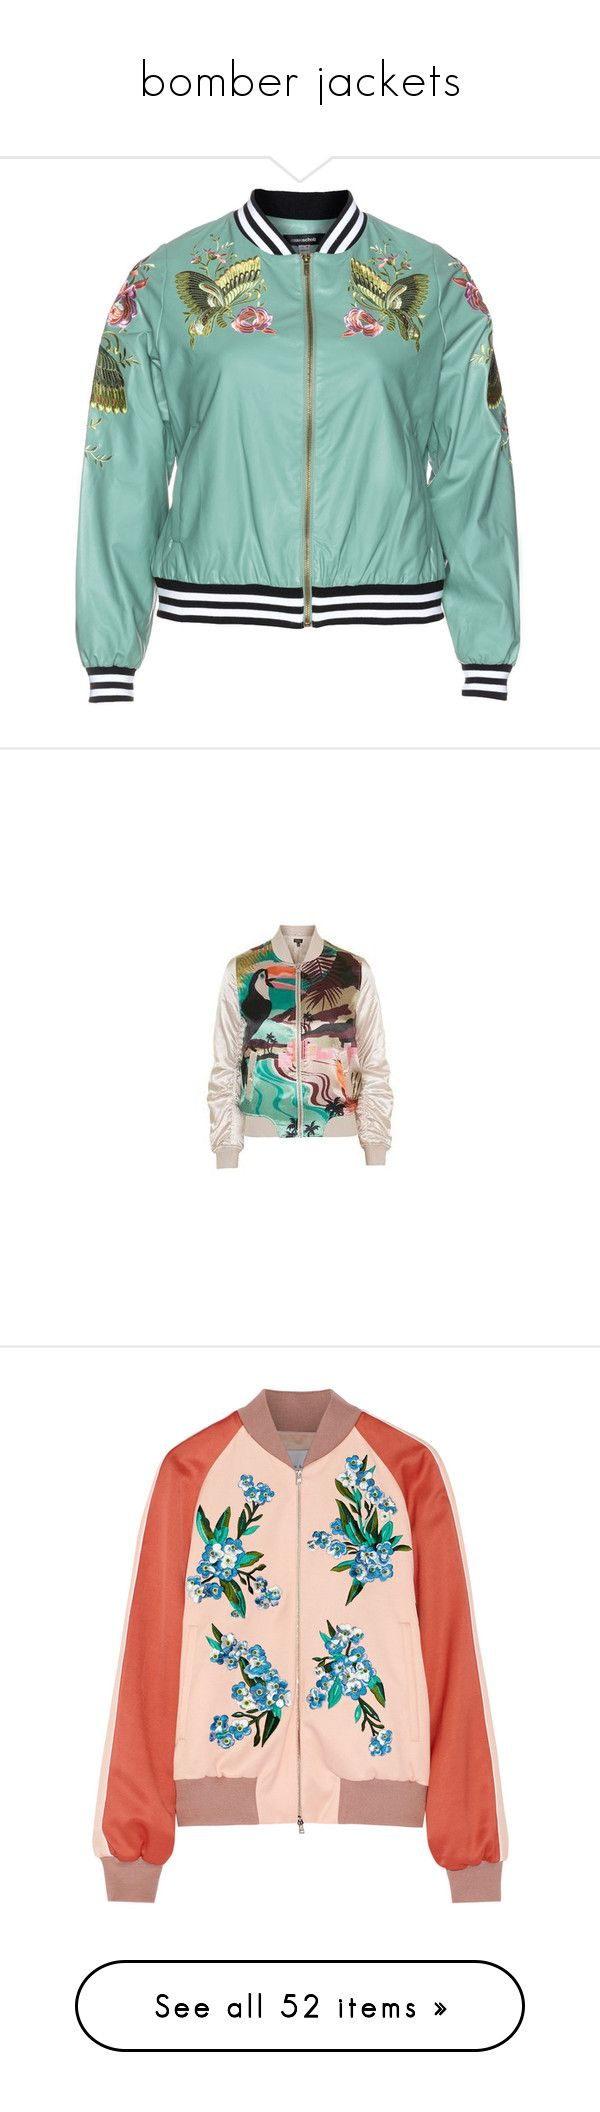 """""""bomber jackets"""" by vaughnroyal ❤ liked on Polyvore featuring outerwear, jackets, mint, plus size, embellished jacket, pastel jacket, green sport jacket, embellished bomber jacket, plus size jackets and topshop jackets"""